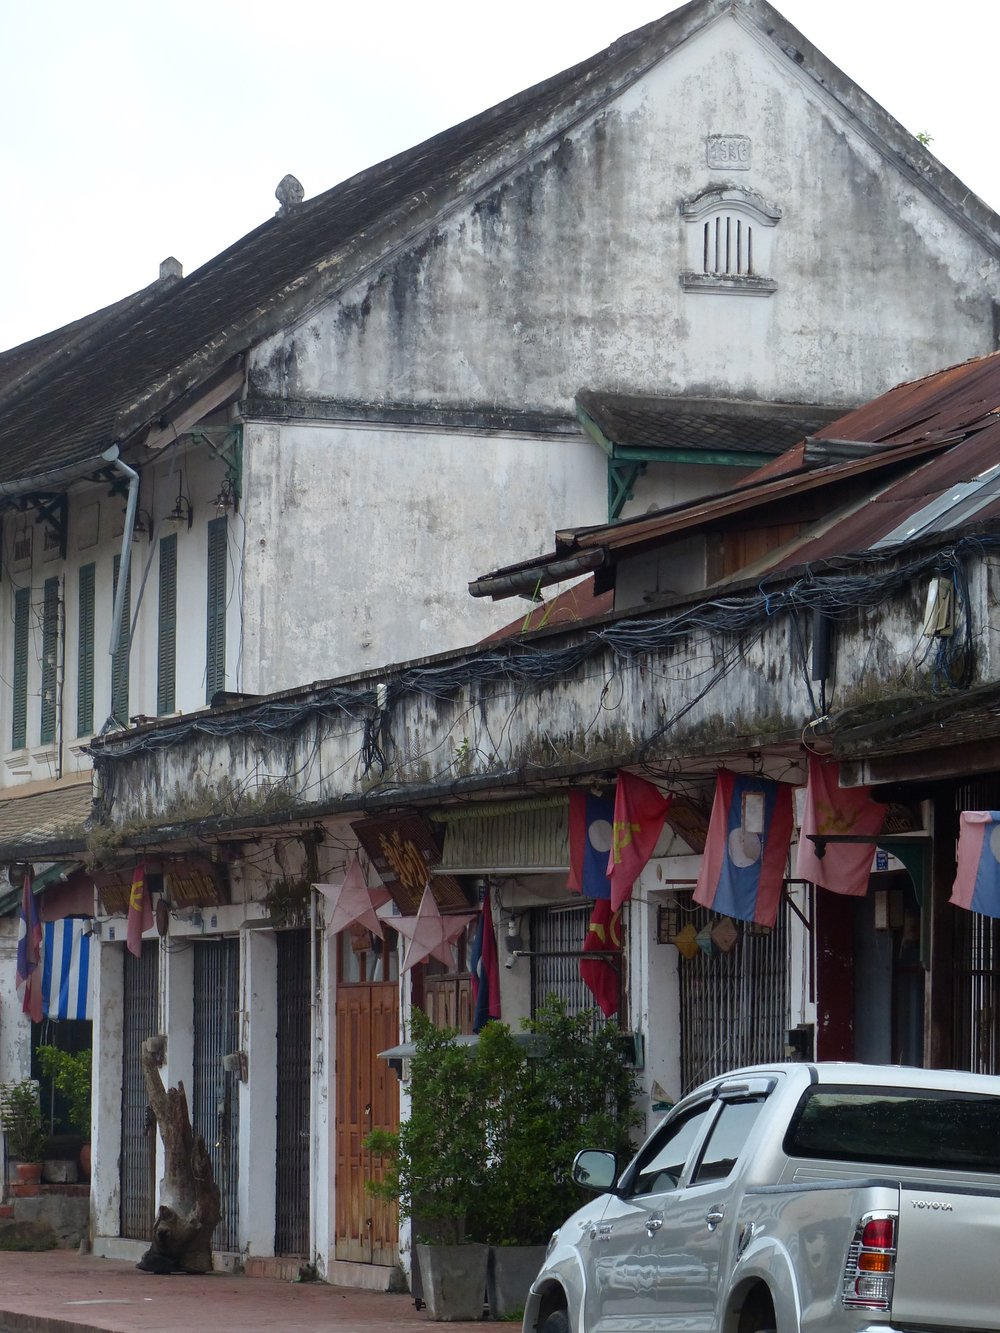 Wandering the streets of Luang Prabang